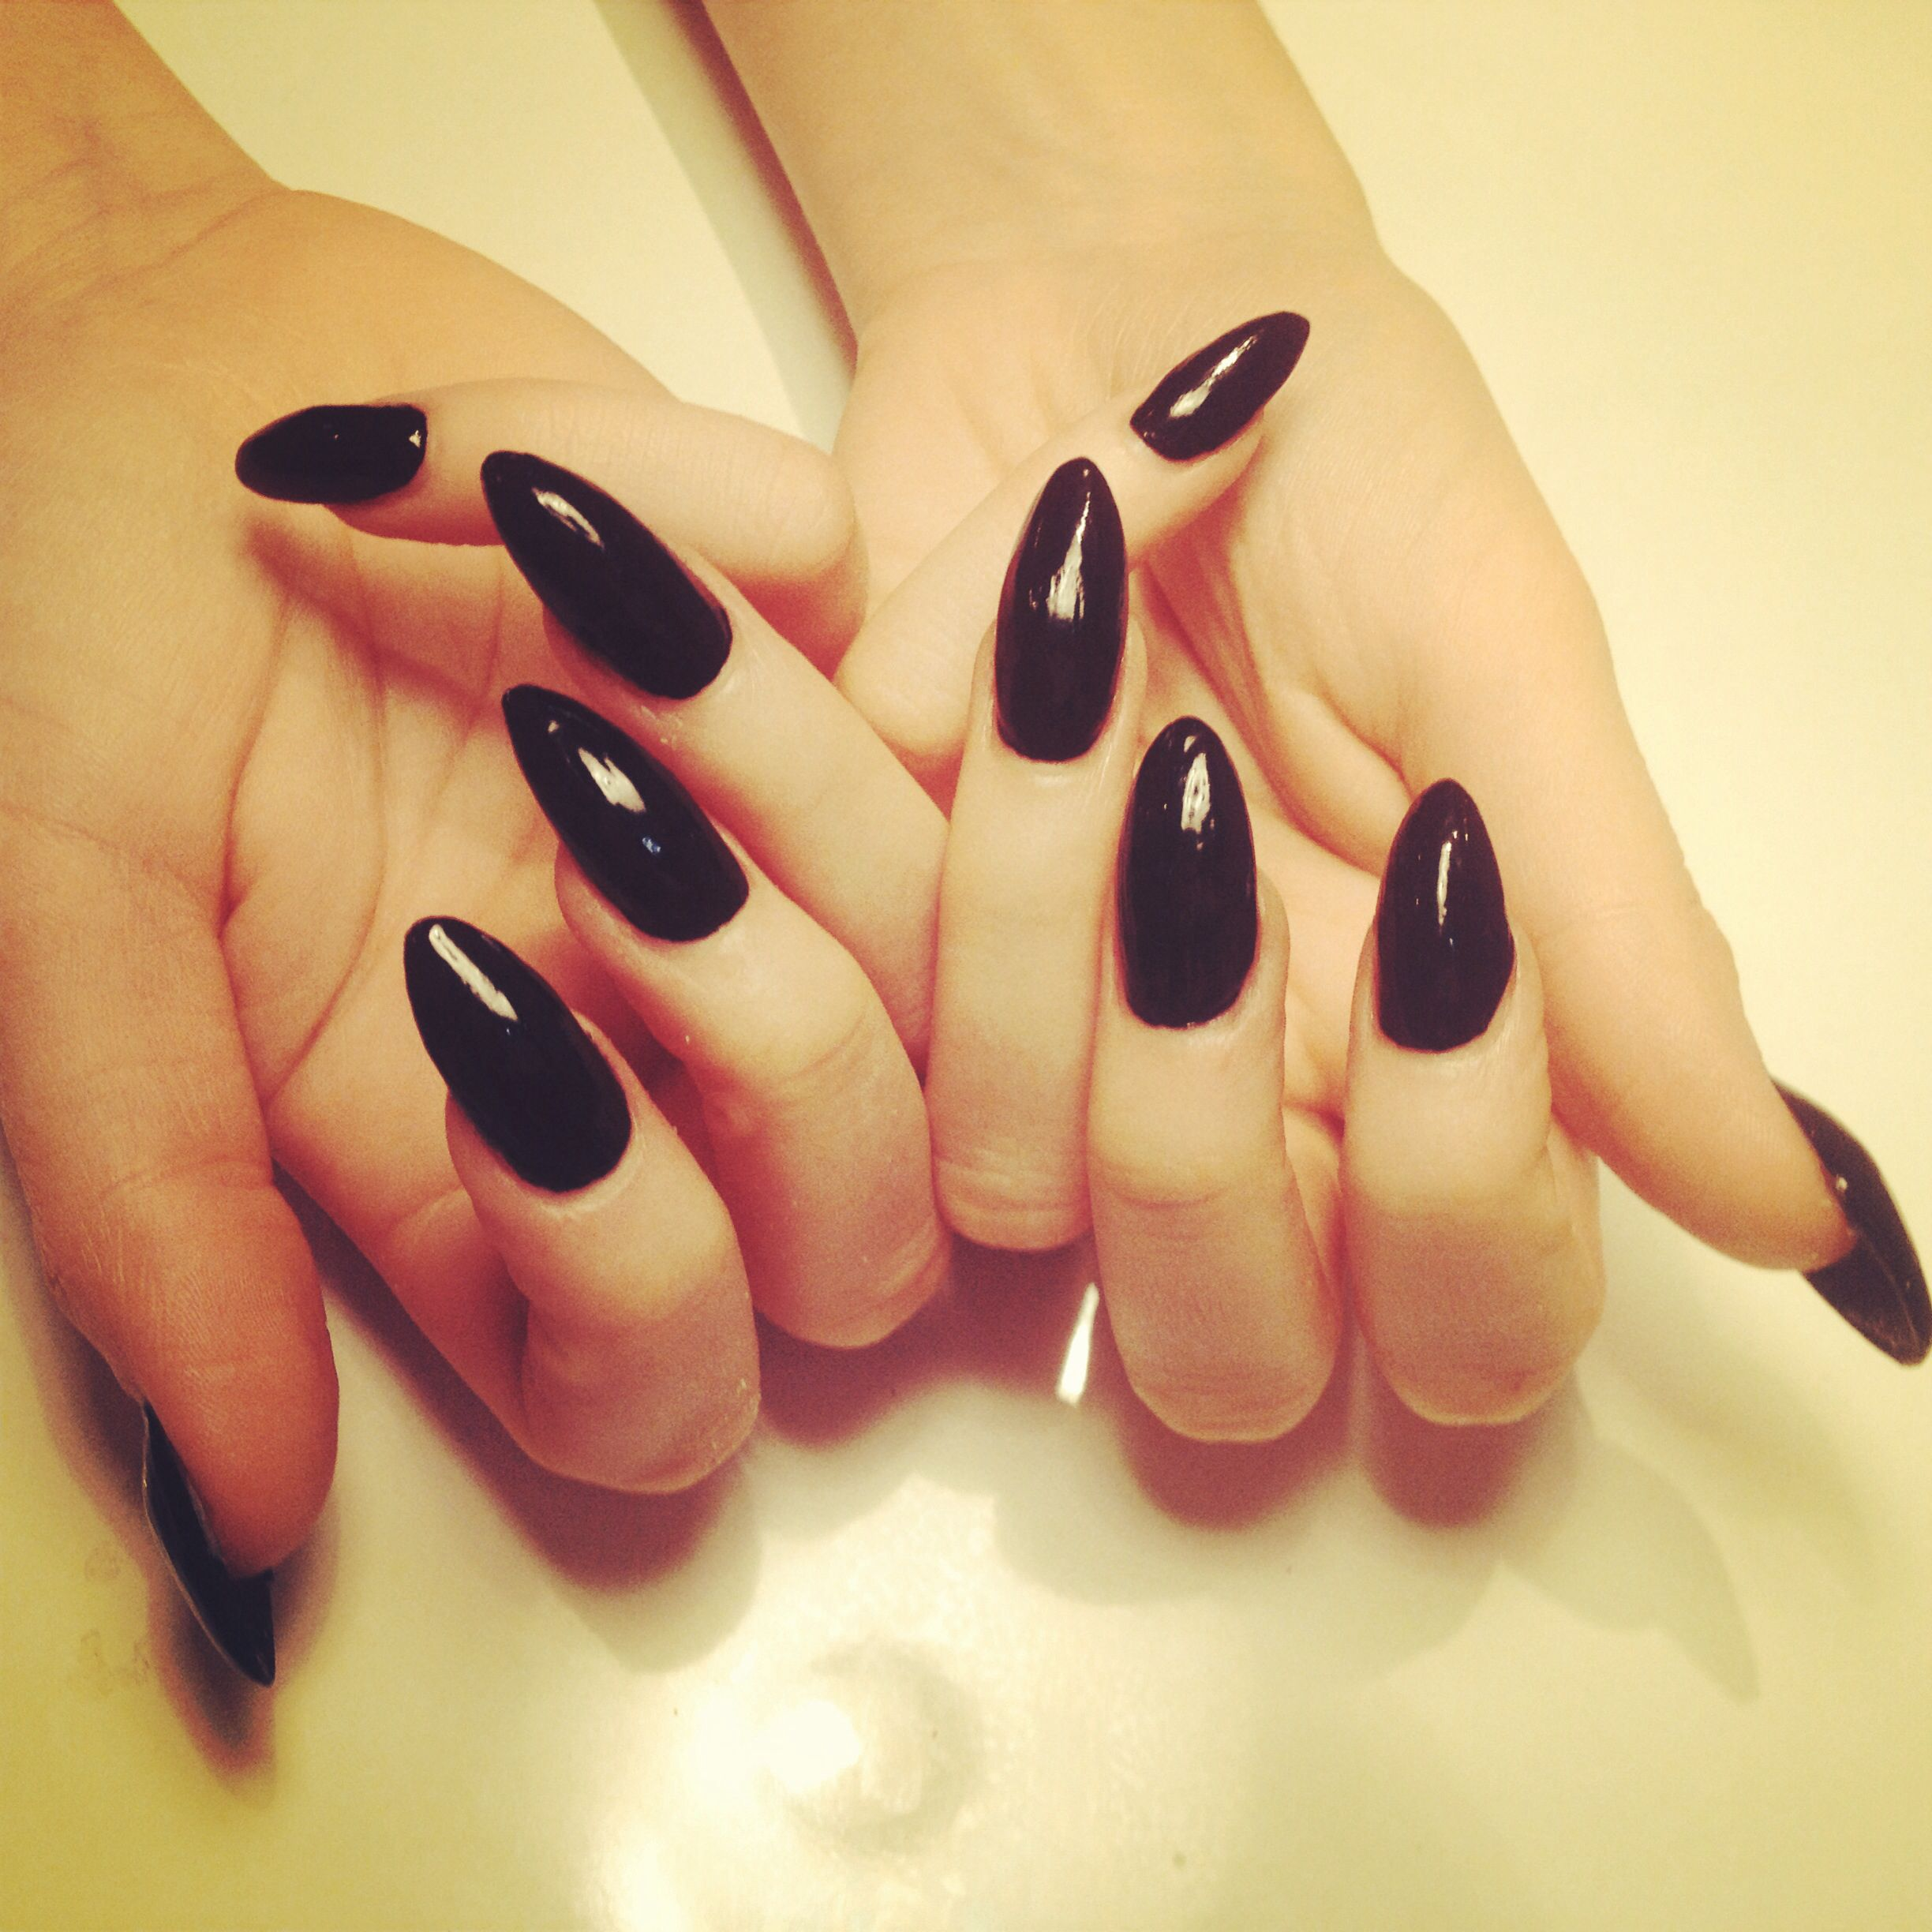 Acrylic Nail Extensions | Black is the new sexy | Pinterest ...